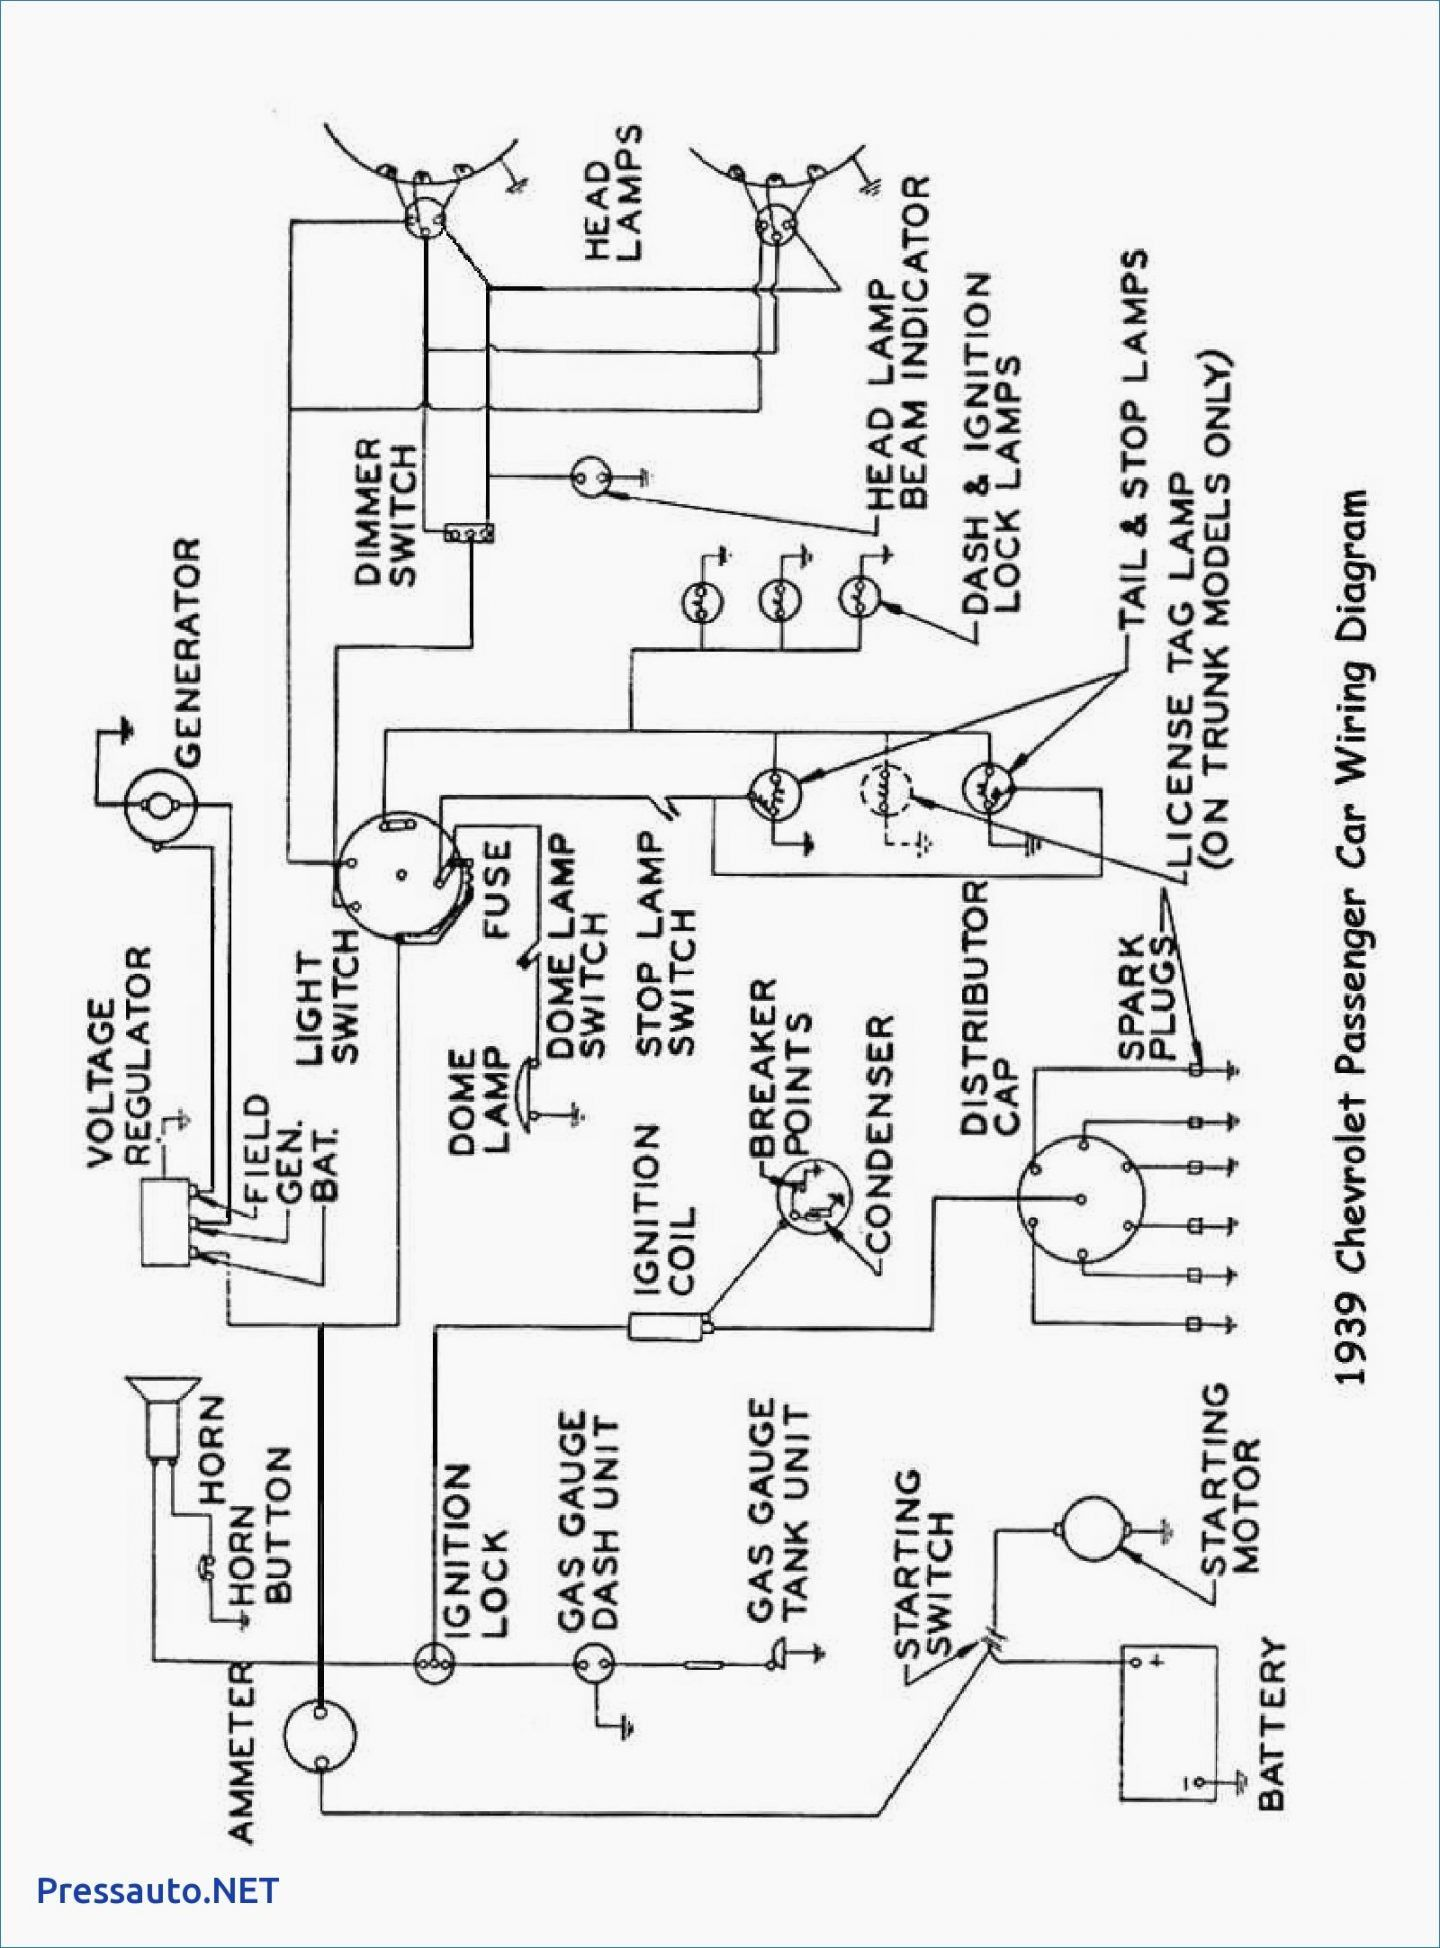 Peachy Wiring Diagram Welding Machine Inspirationa Best Of Pdf Circuit Wiring Digital Resources Remcakbiperorg